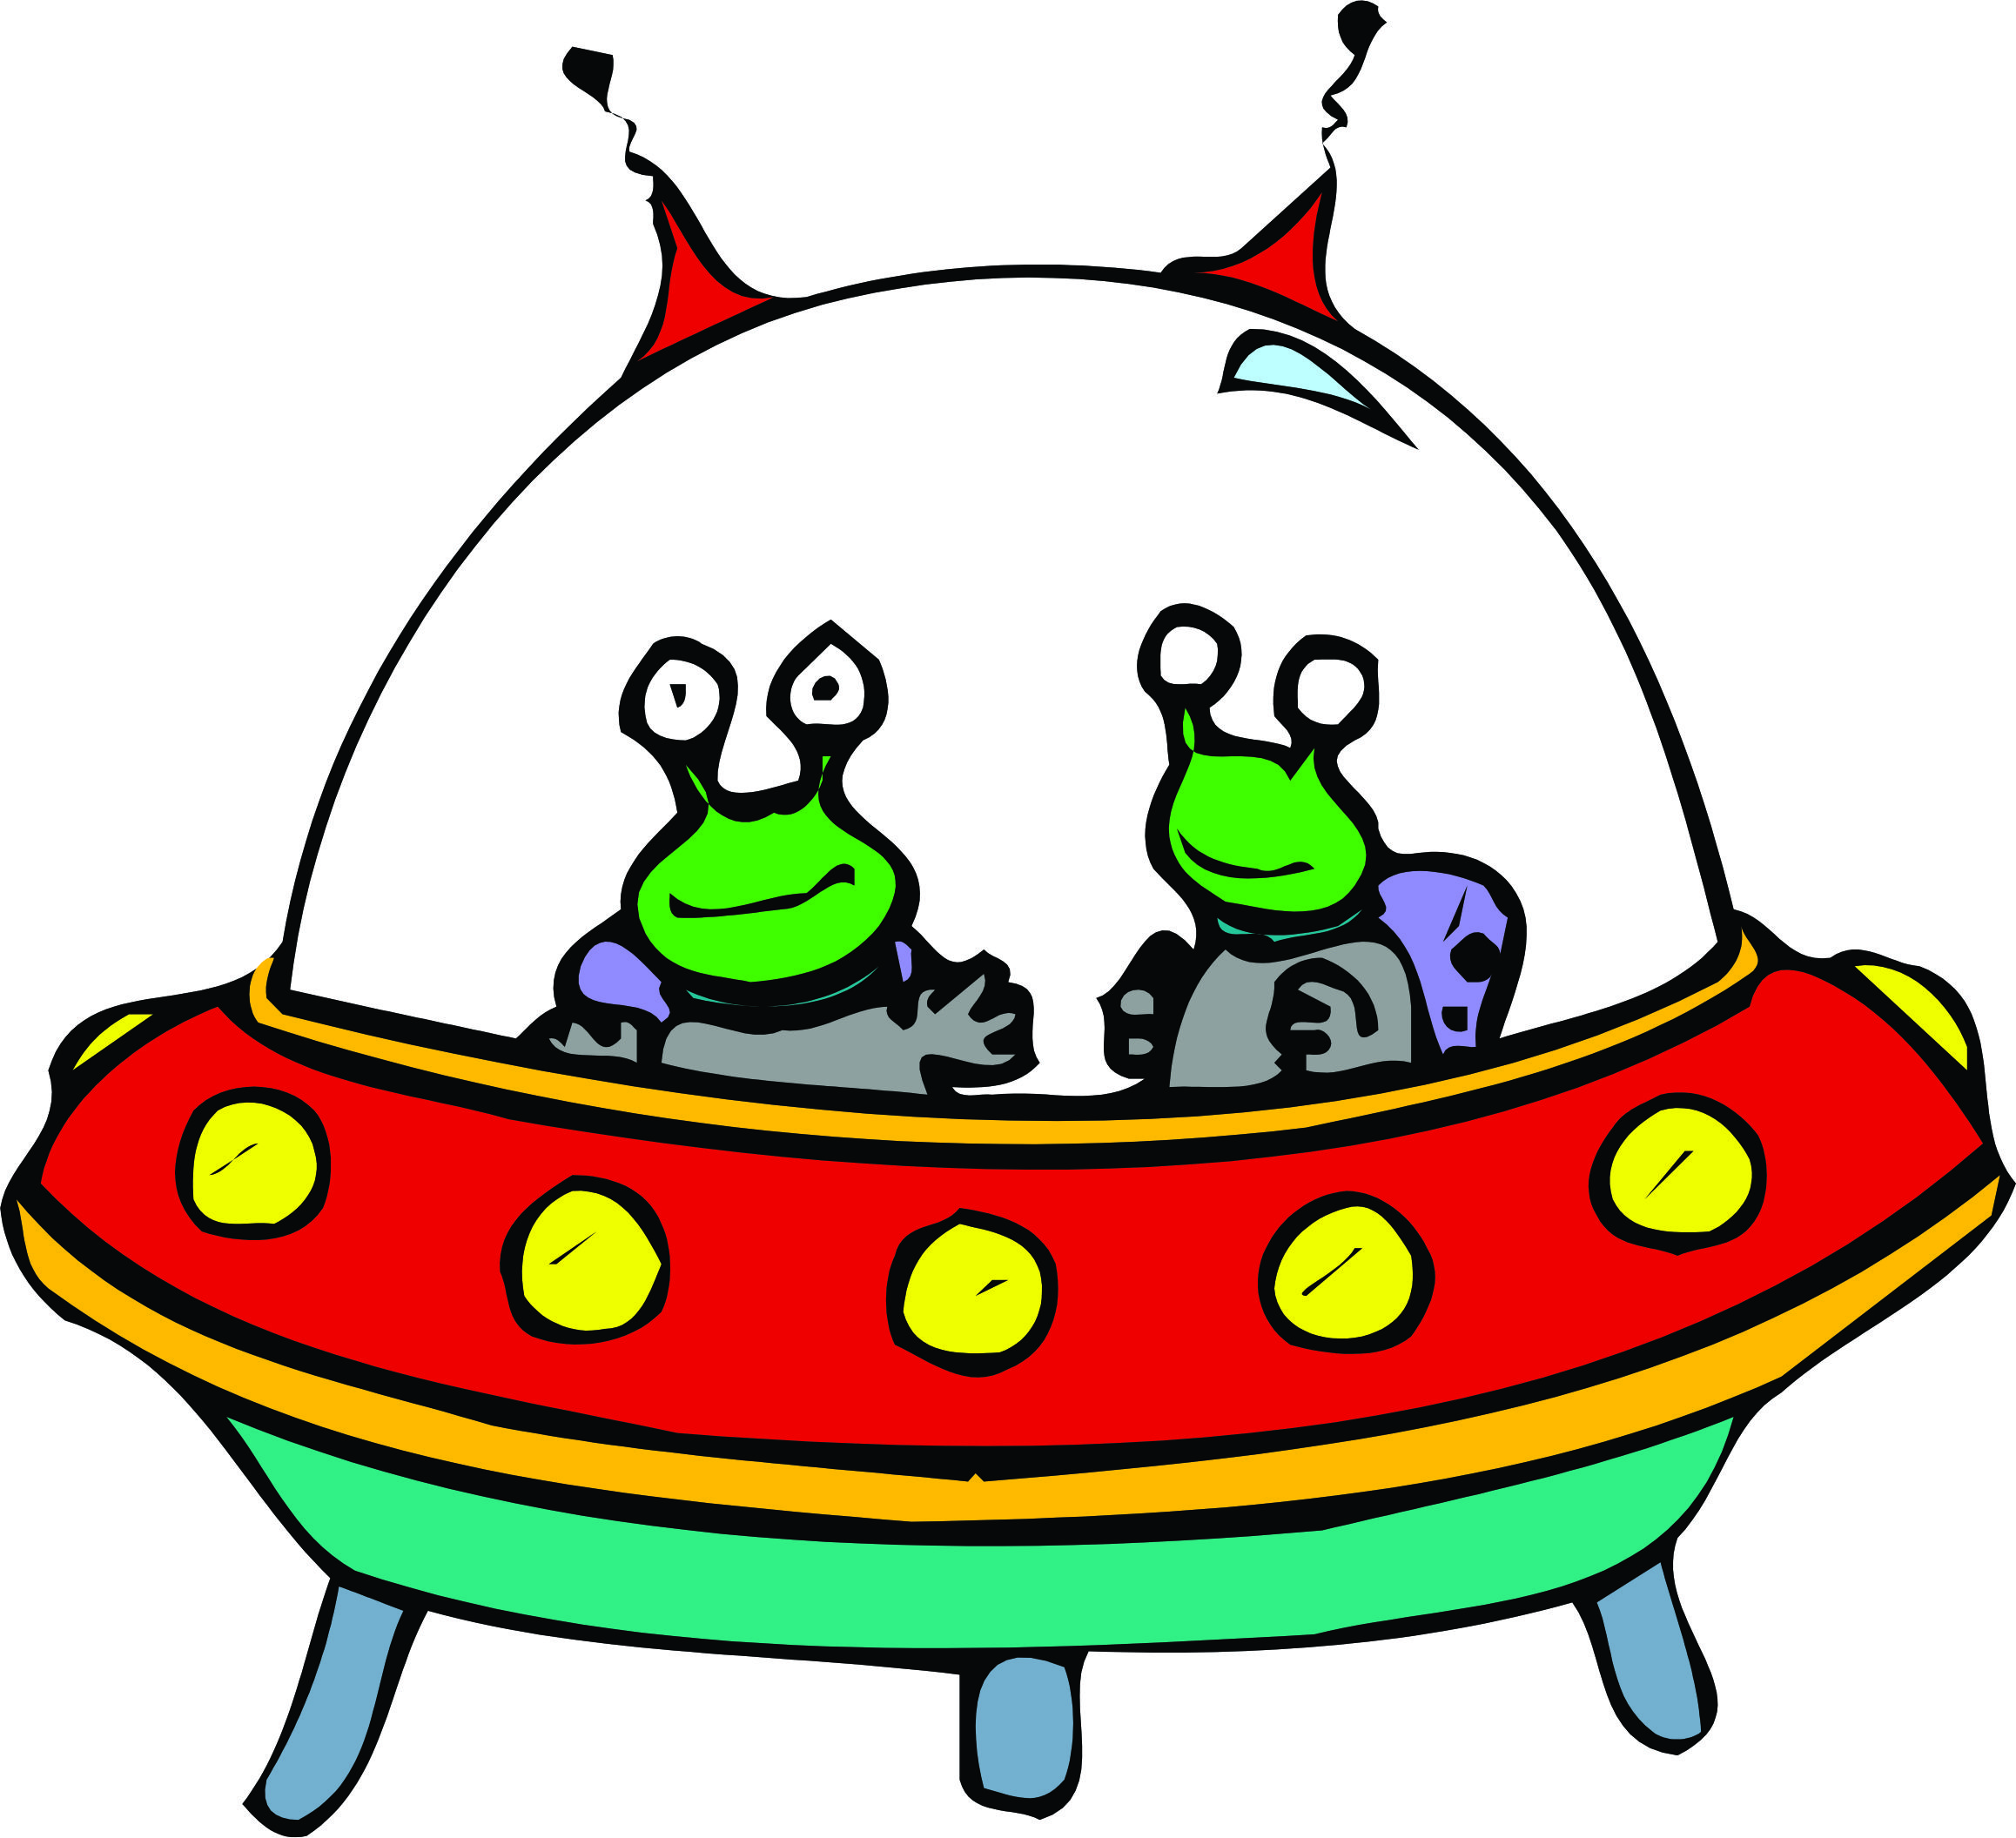 space ship clip art - photo #10